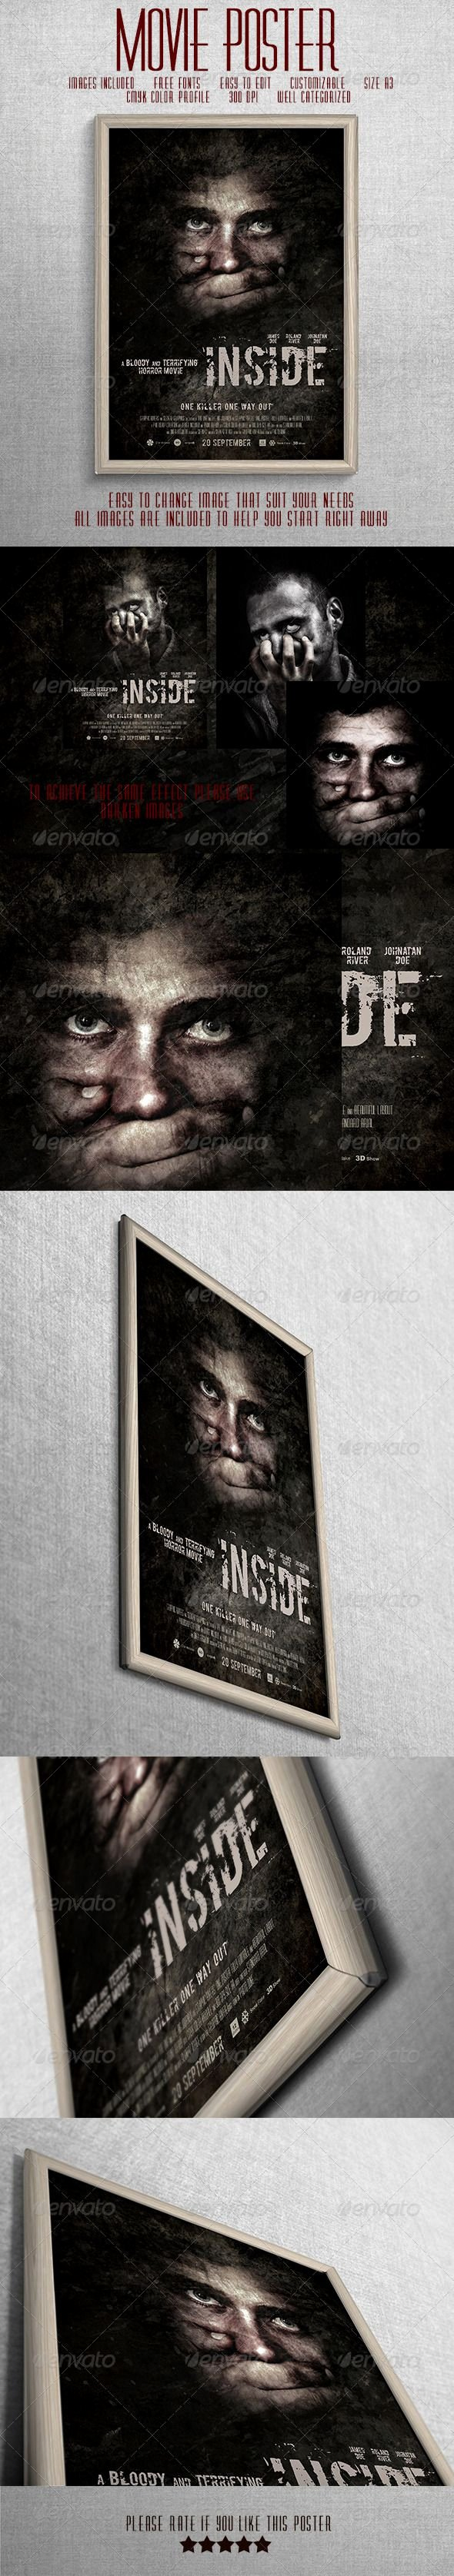 Horror Movie Poster Template Inspirational Best 25 Movie Poster Template Ideas On Pinterest